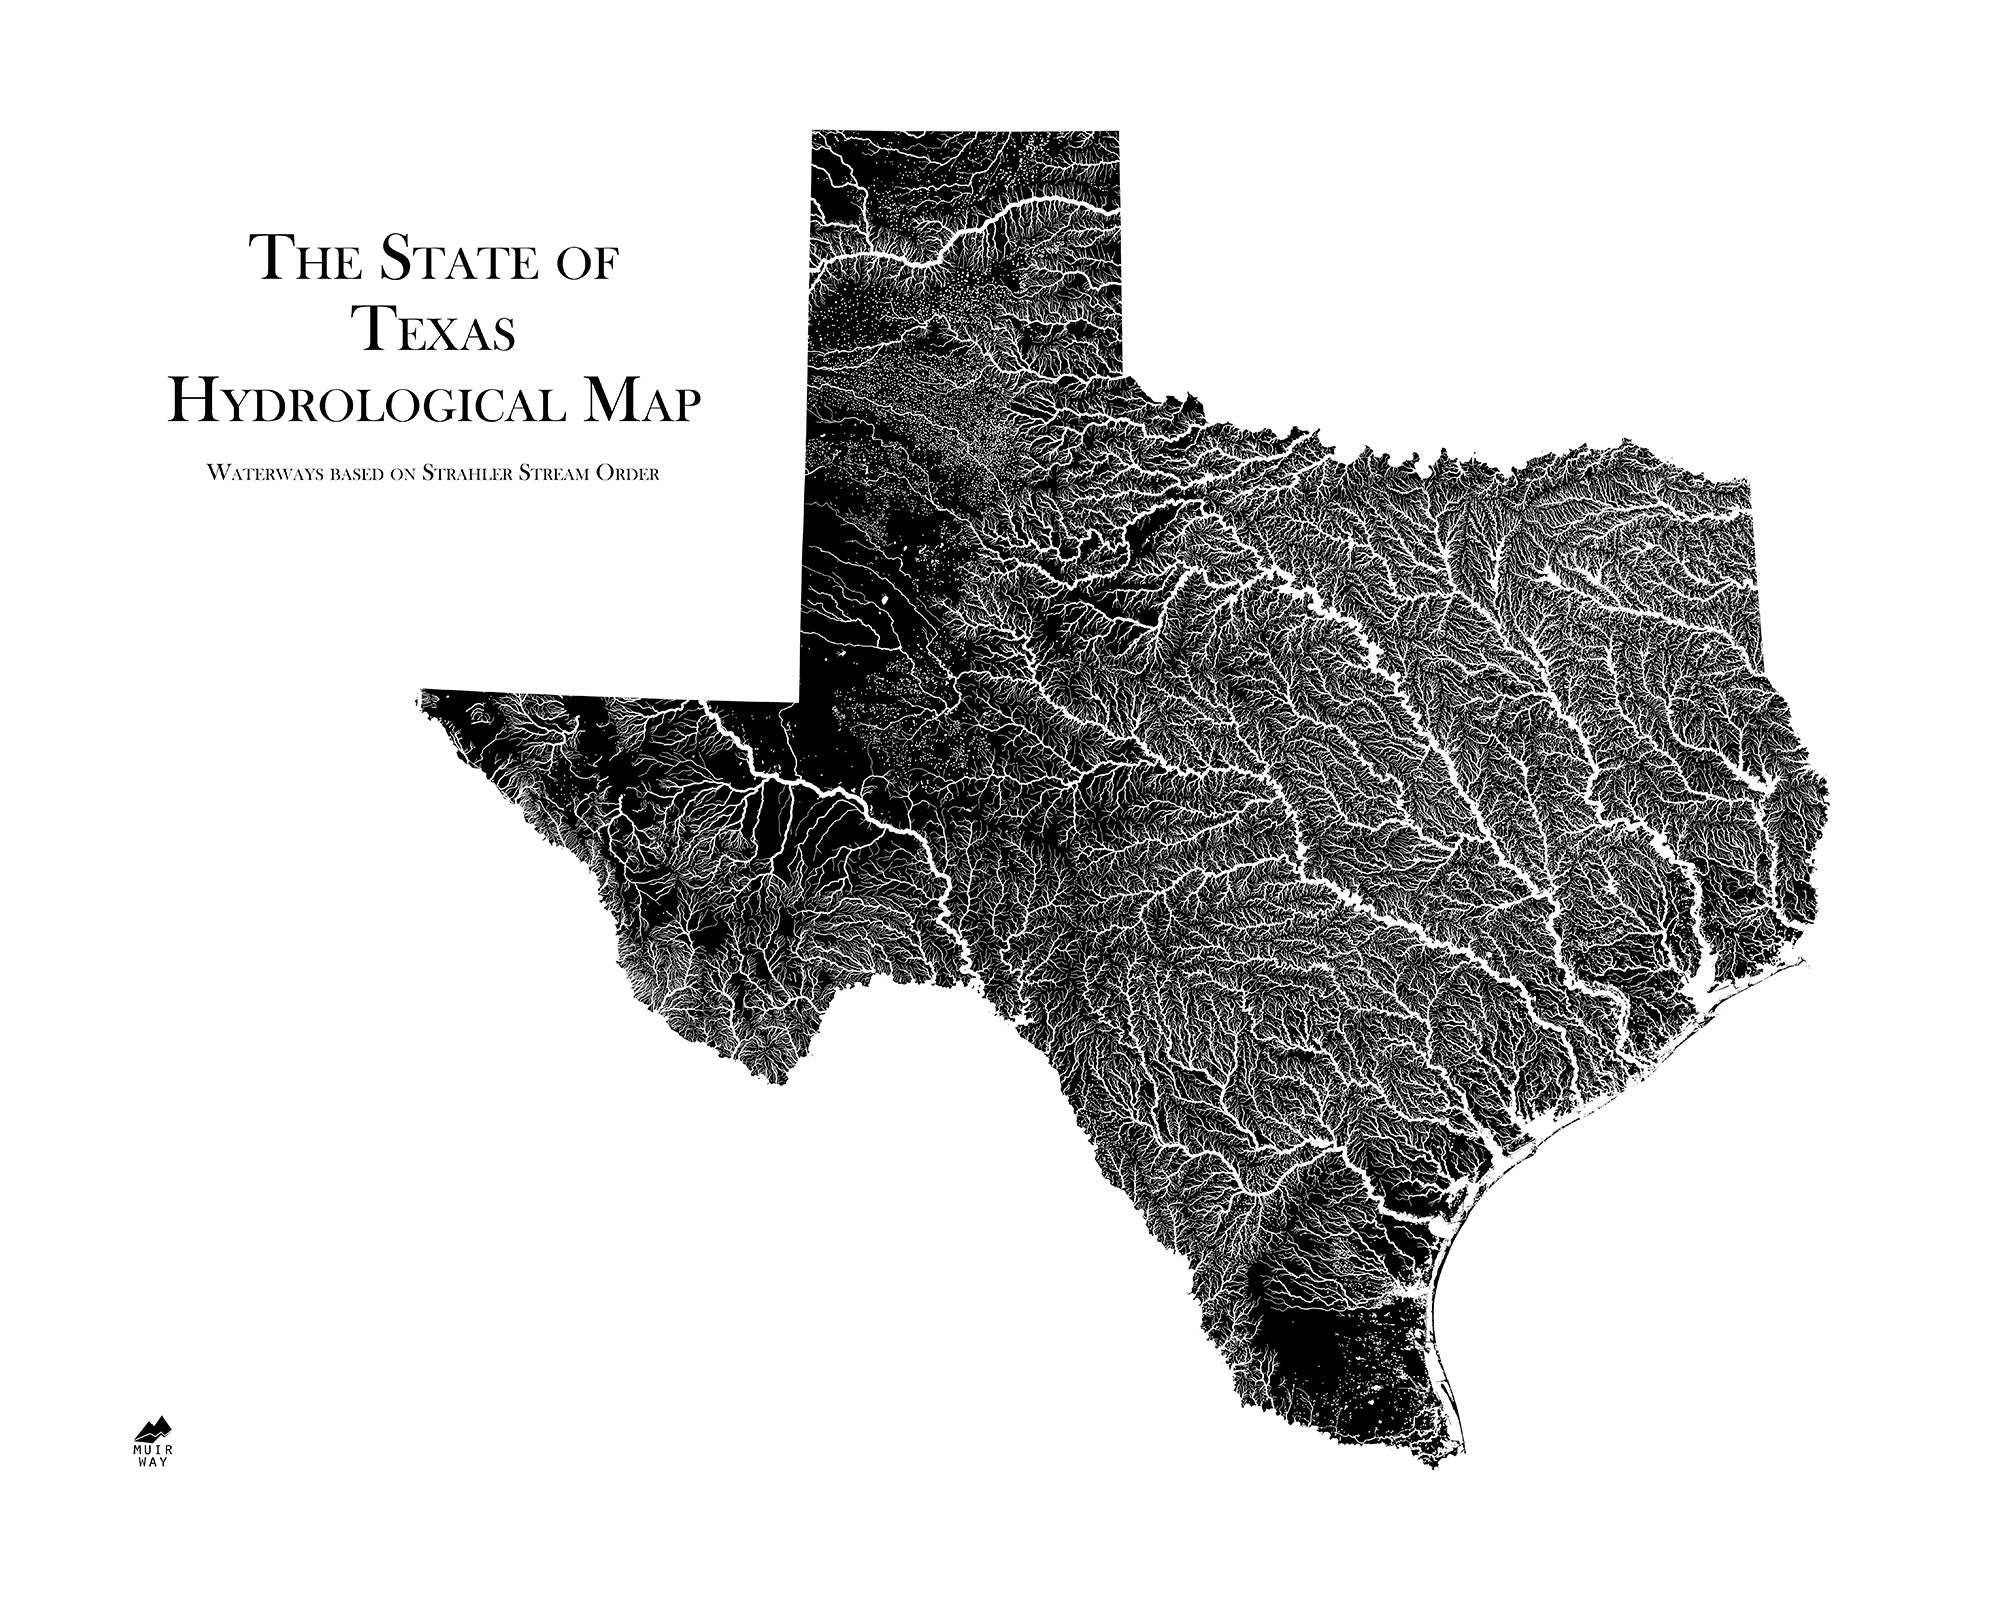 A Map Of The State Of Texas.Texas Hydrological Map